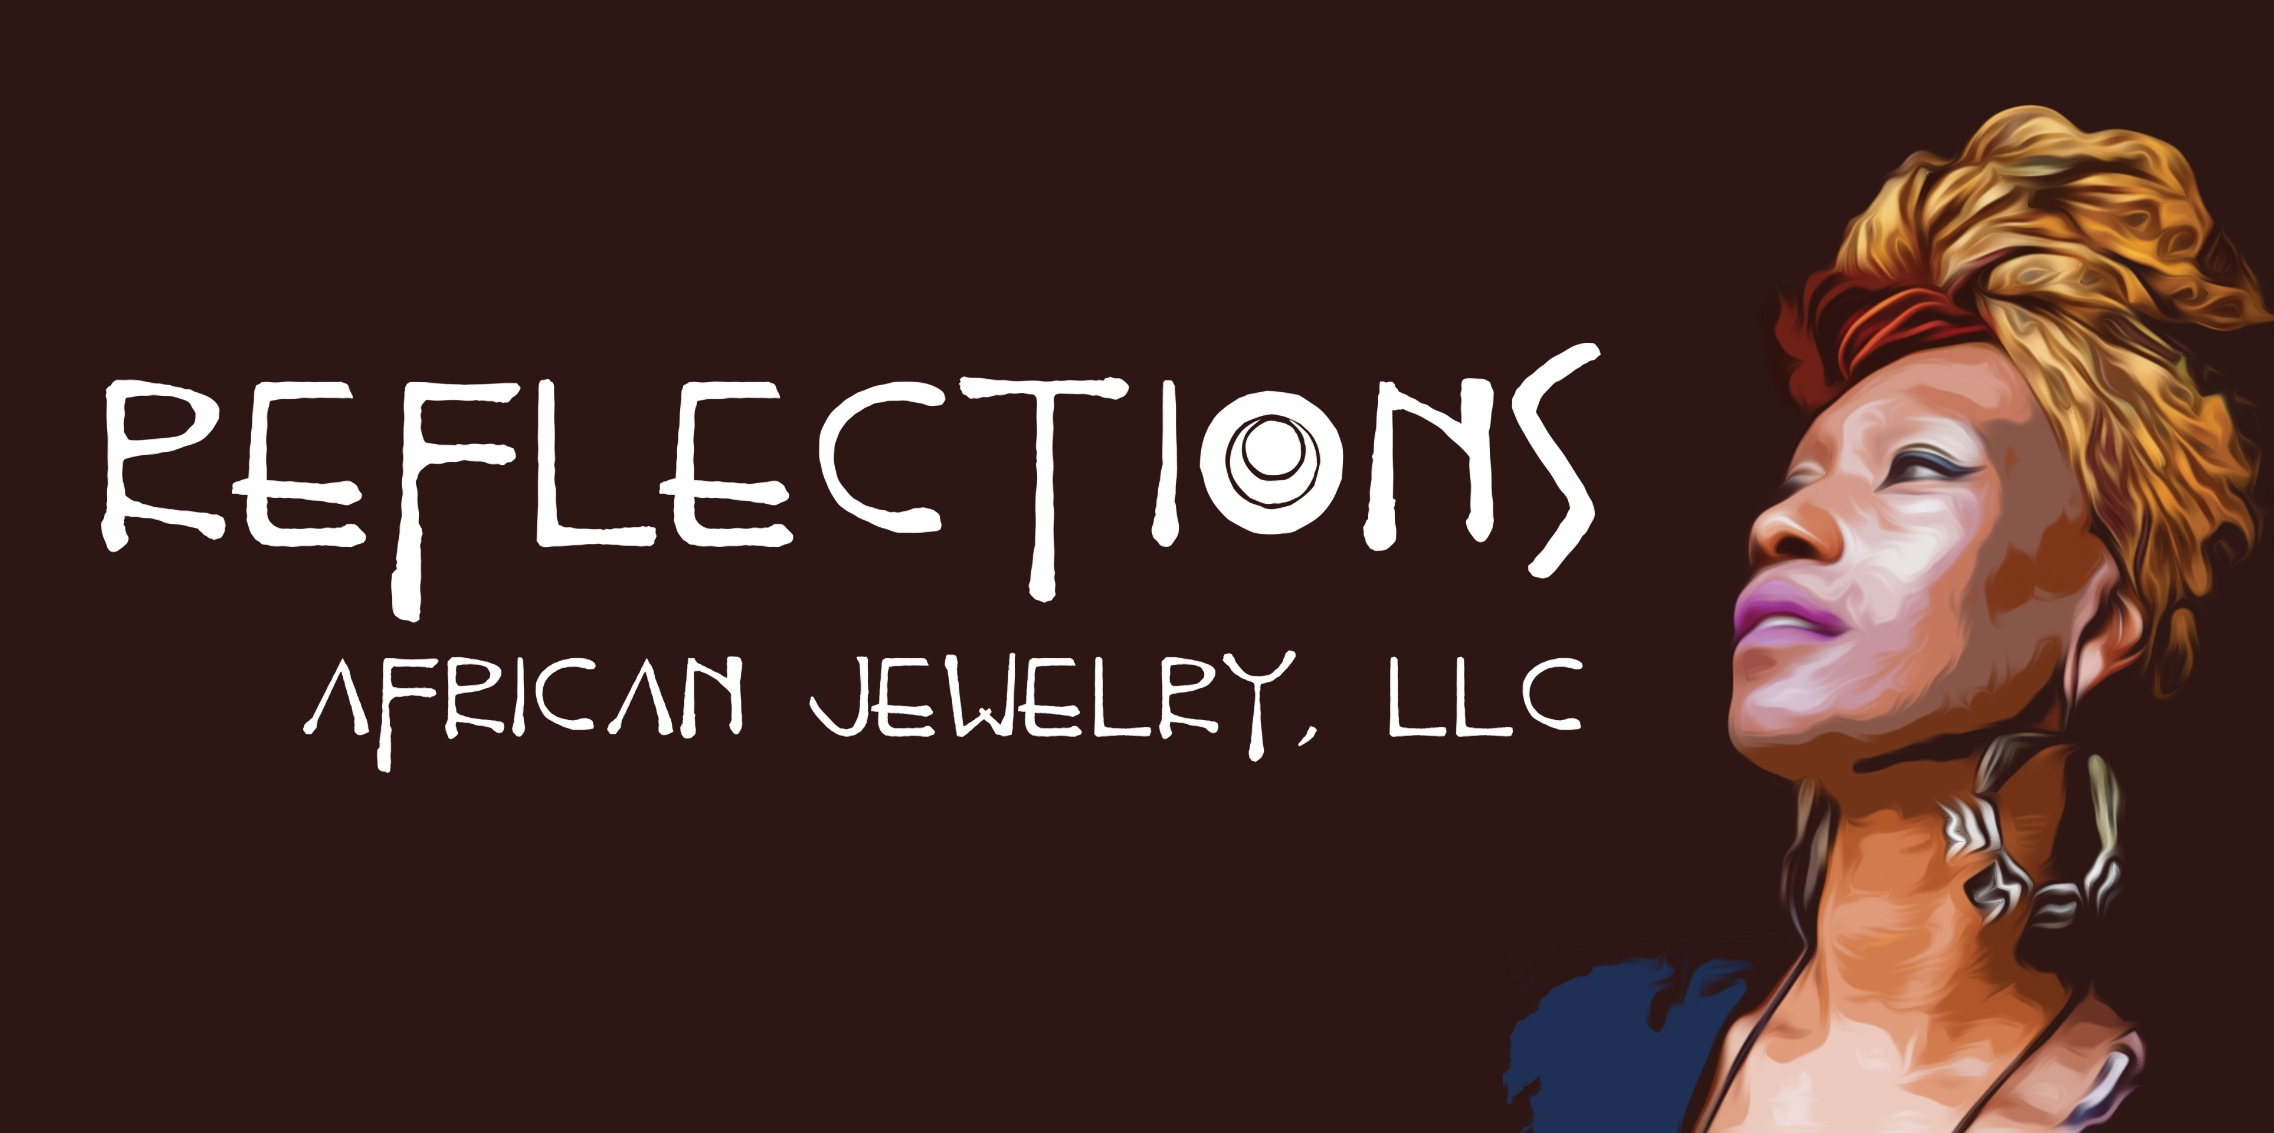 Reflections African Jewelry, LLC